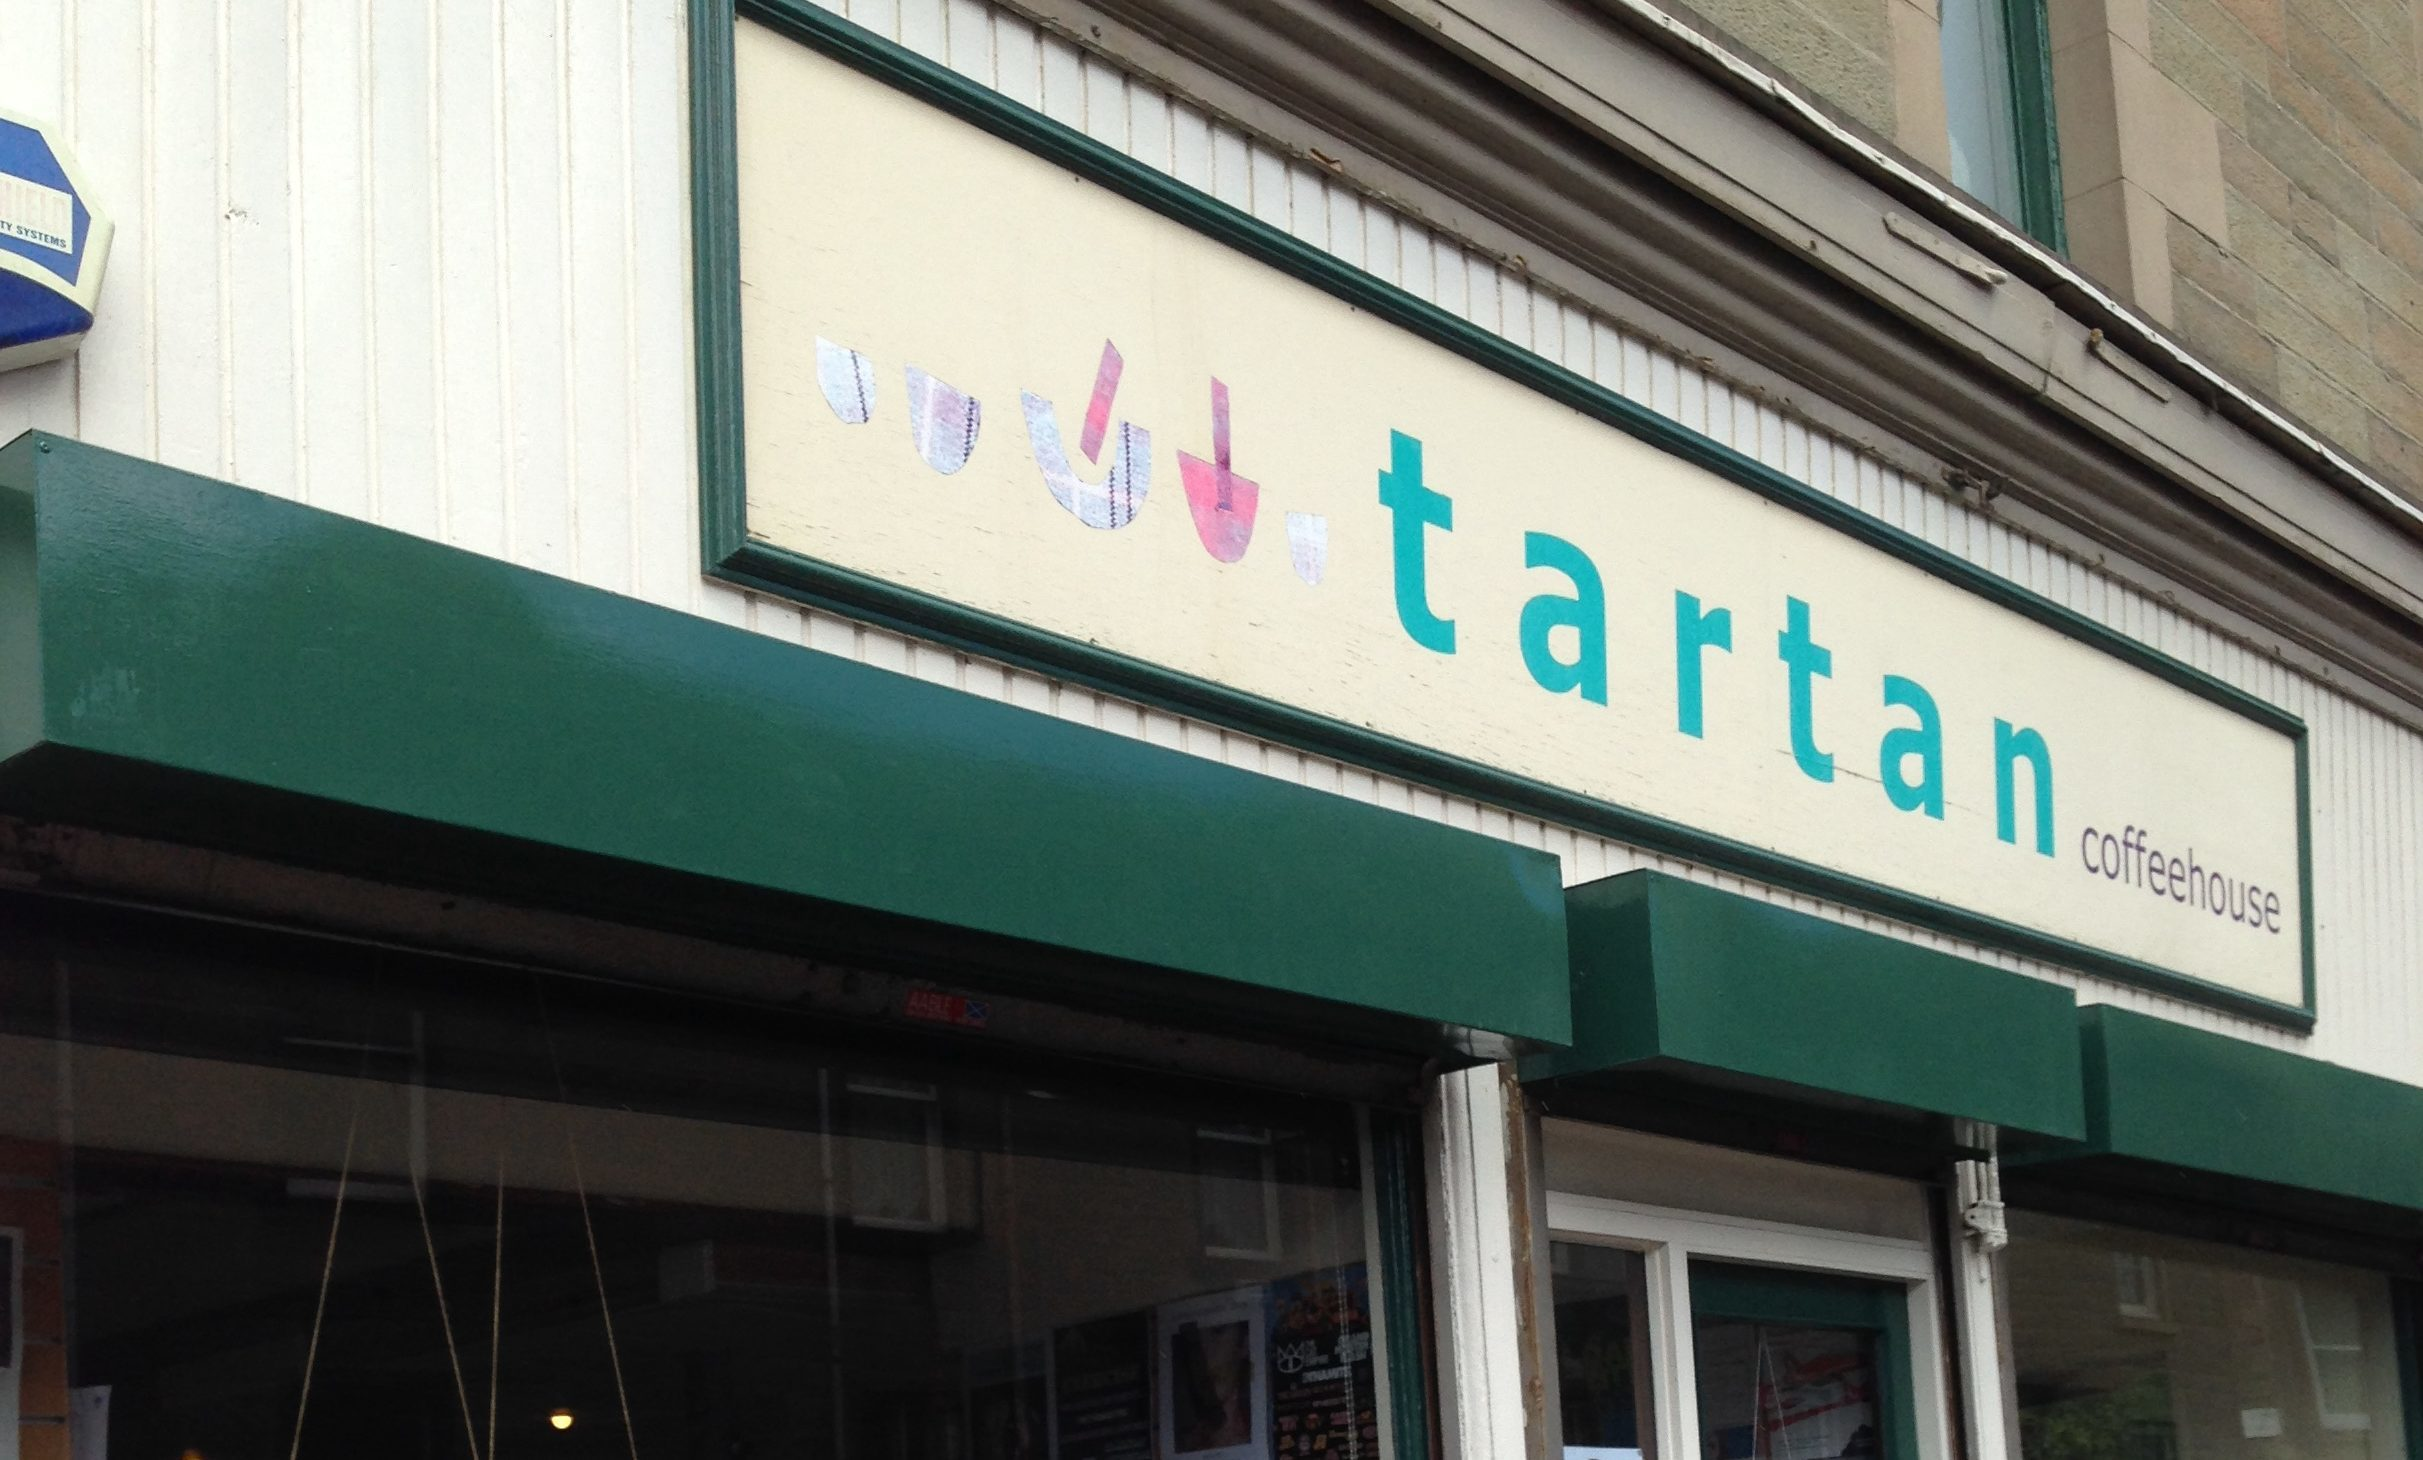 The public meeting will be held in the Tartan Coffee House on Perth Road.